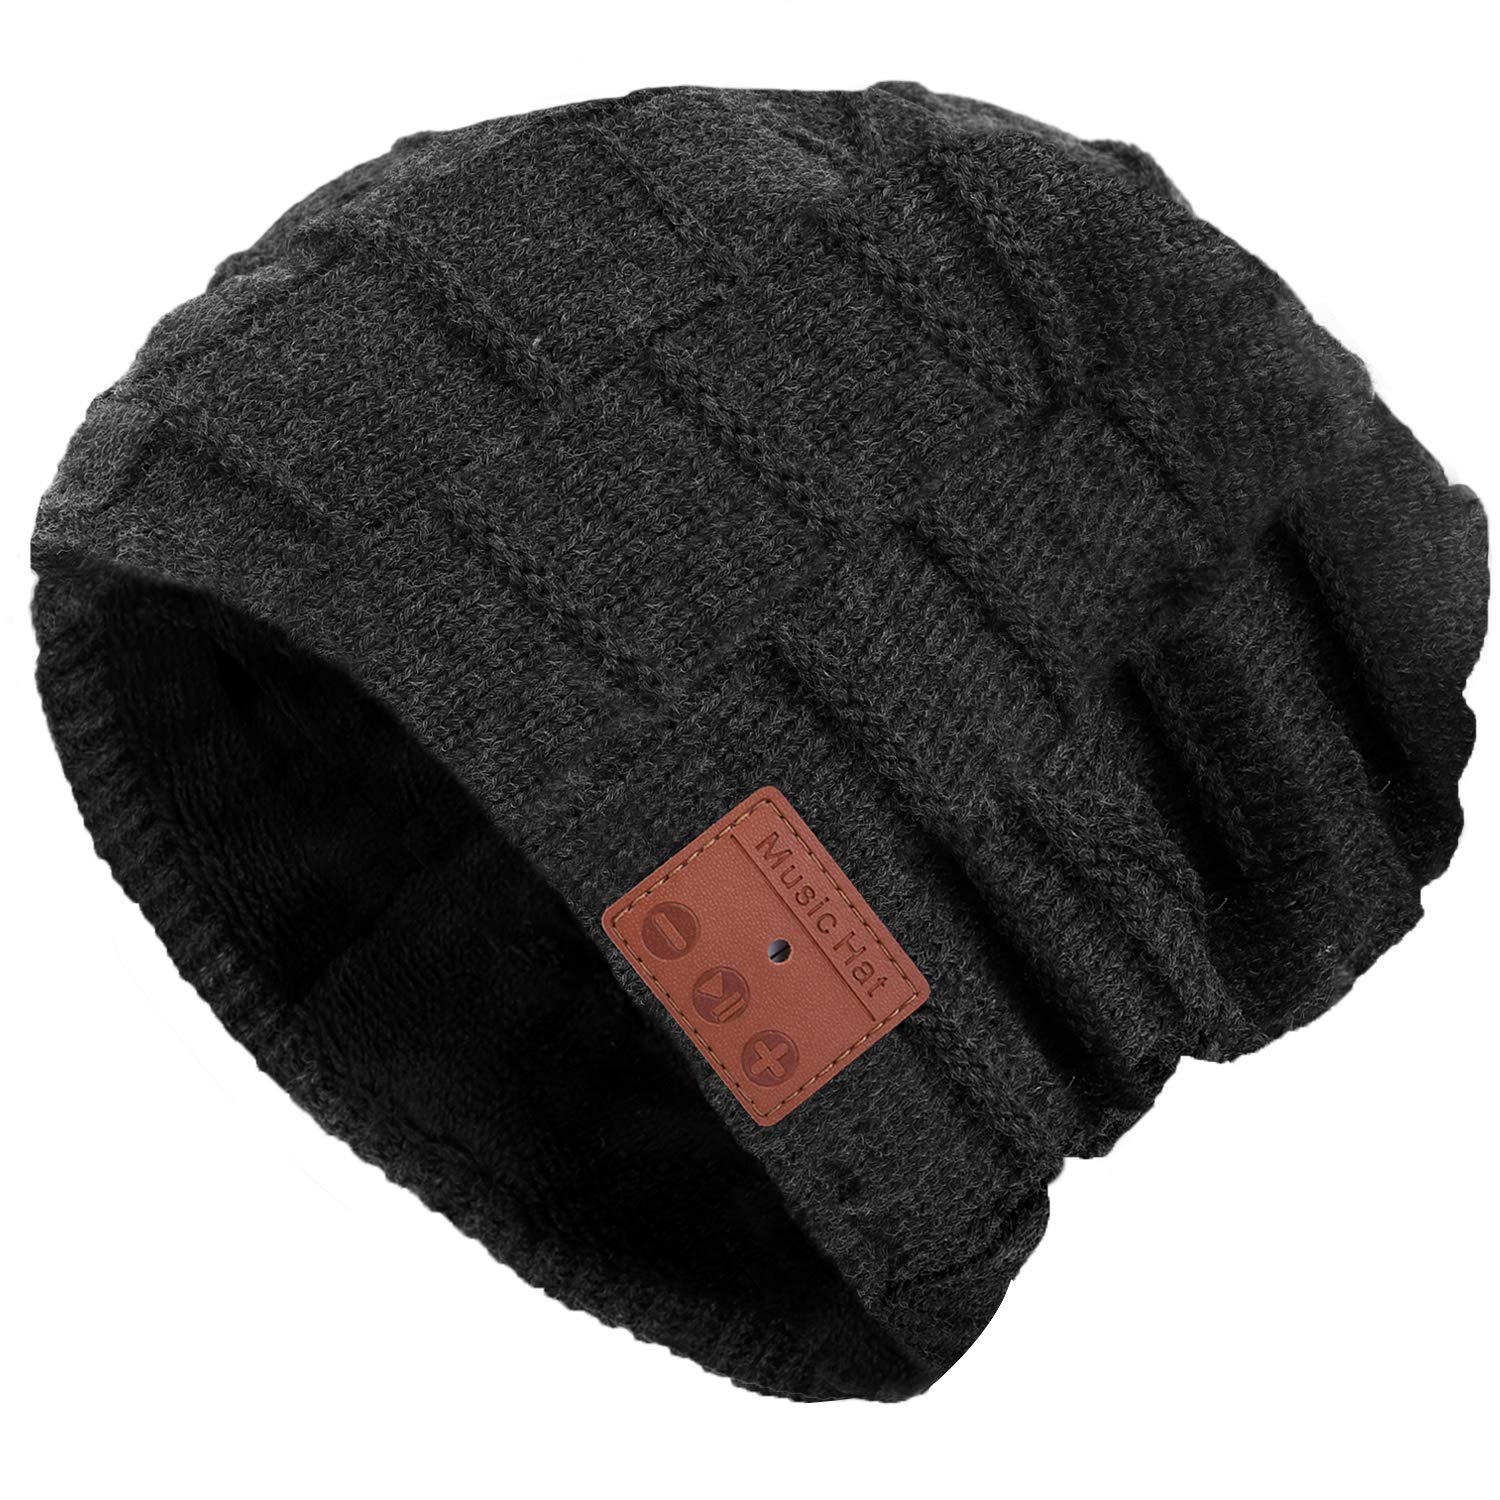 50fce2a15 Bluetooth Beanie Hat, GDSMITH Hand - Free Wireless Bluetooth Music Knit Hat  Cap with Speakerphone Stereo Headphone for Fitness Outdoor sport, Unique ...